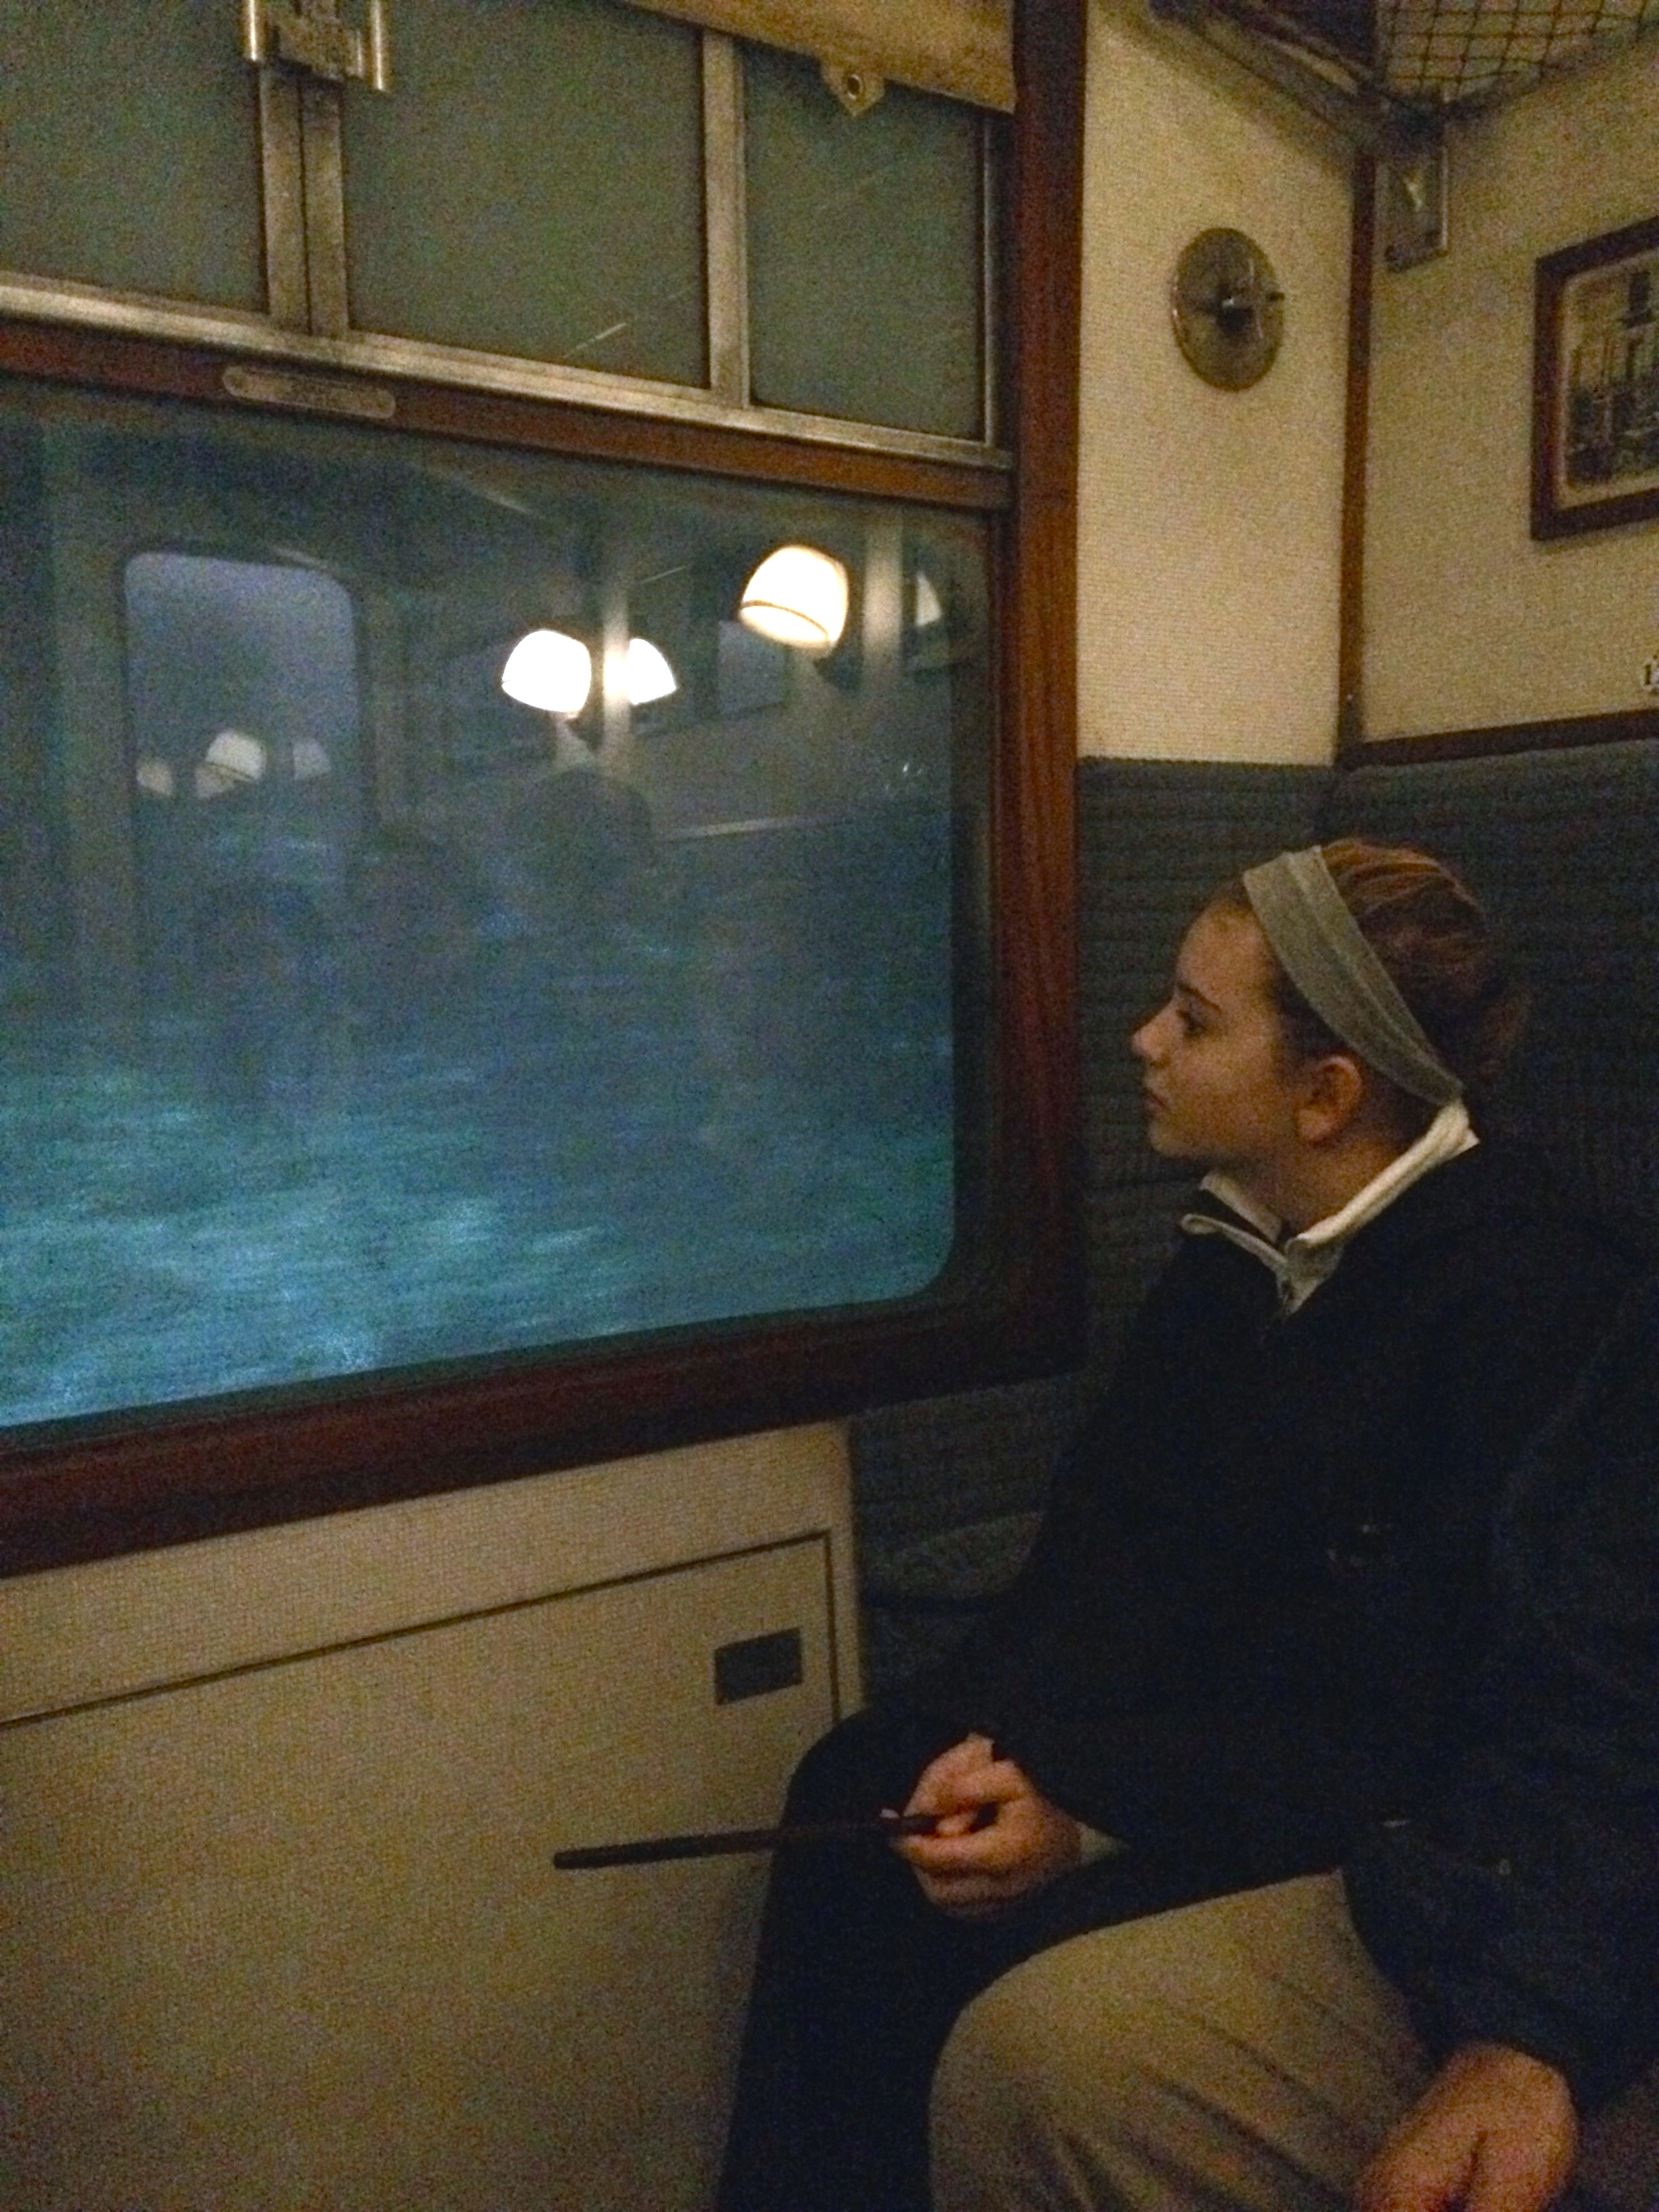 File:Orlando-hogwarts-express-inside-cabin-with-window ...